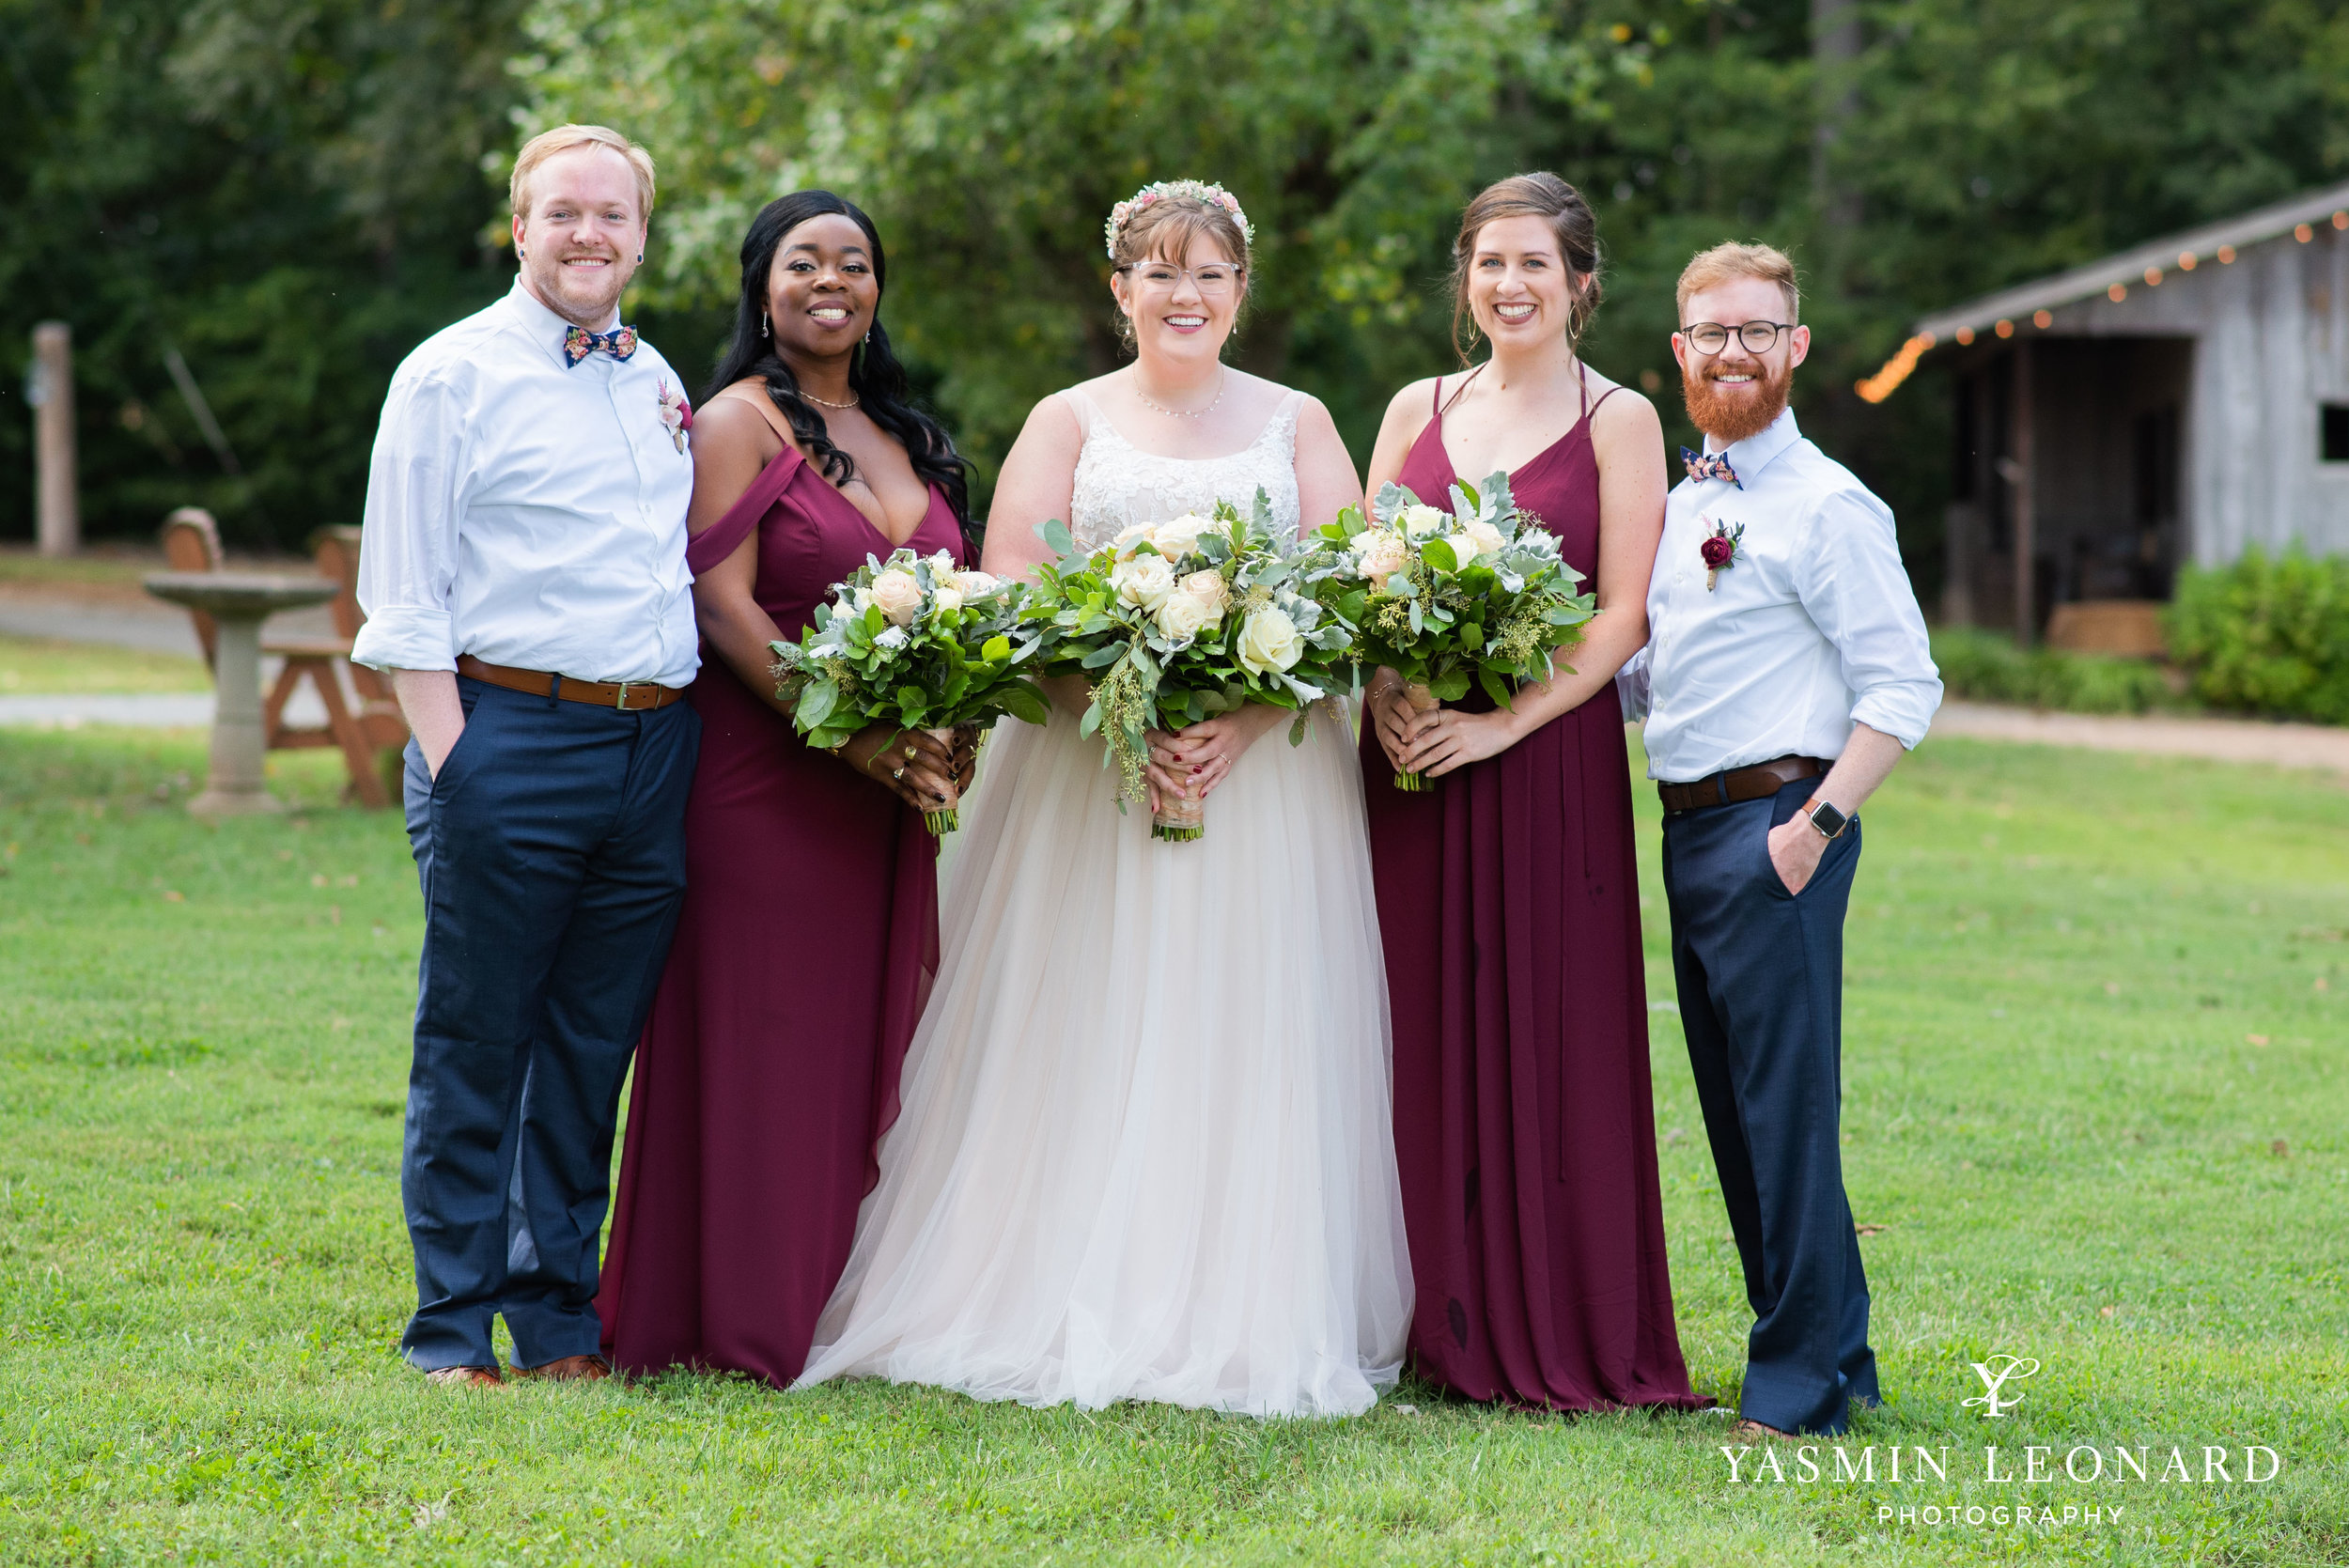 Hannah and David - l'abri at Linwood - NC Barn Weddings - Guys and Girls on Bride's Side - How to incorporate guys with bridesmaids - navy fall wedding - high point photographer - nc wedding venues - triad weddings-11.jpg